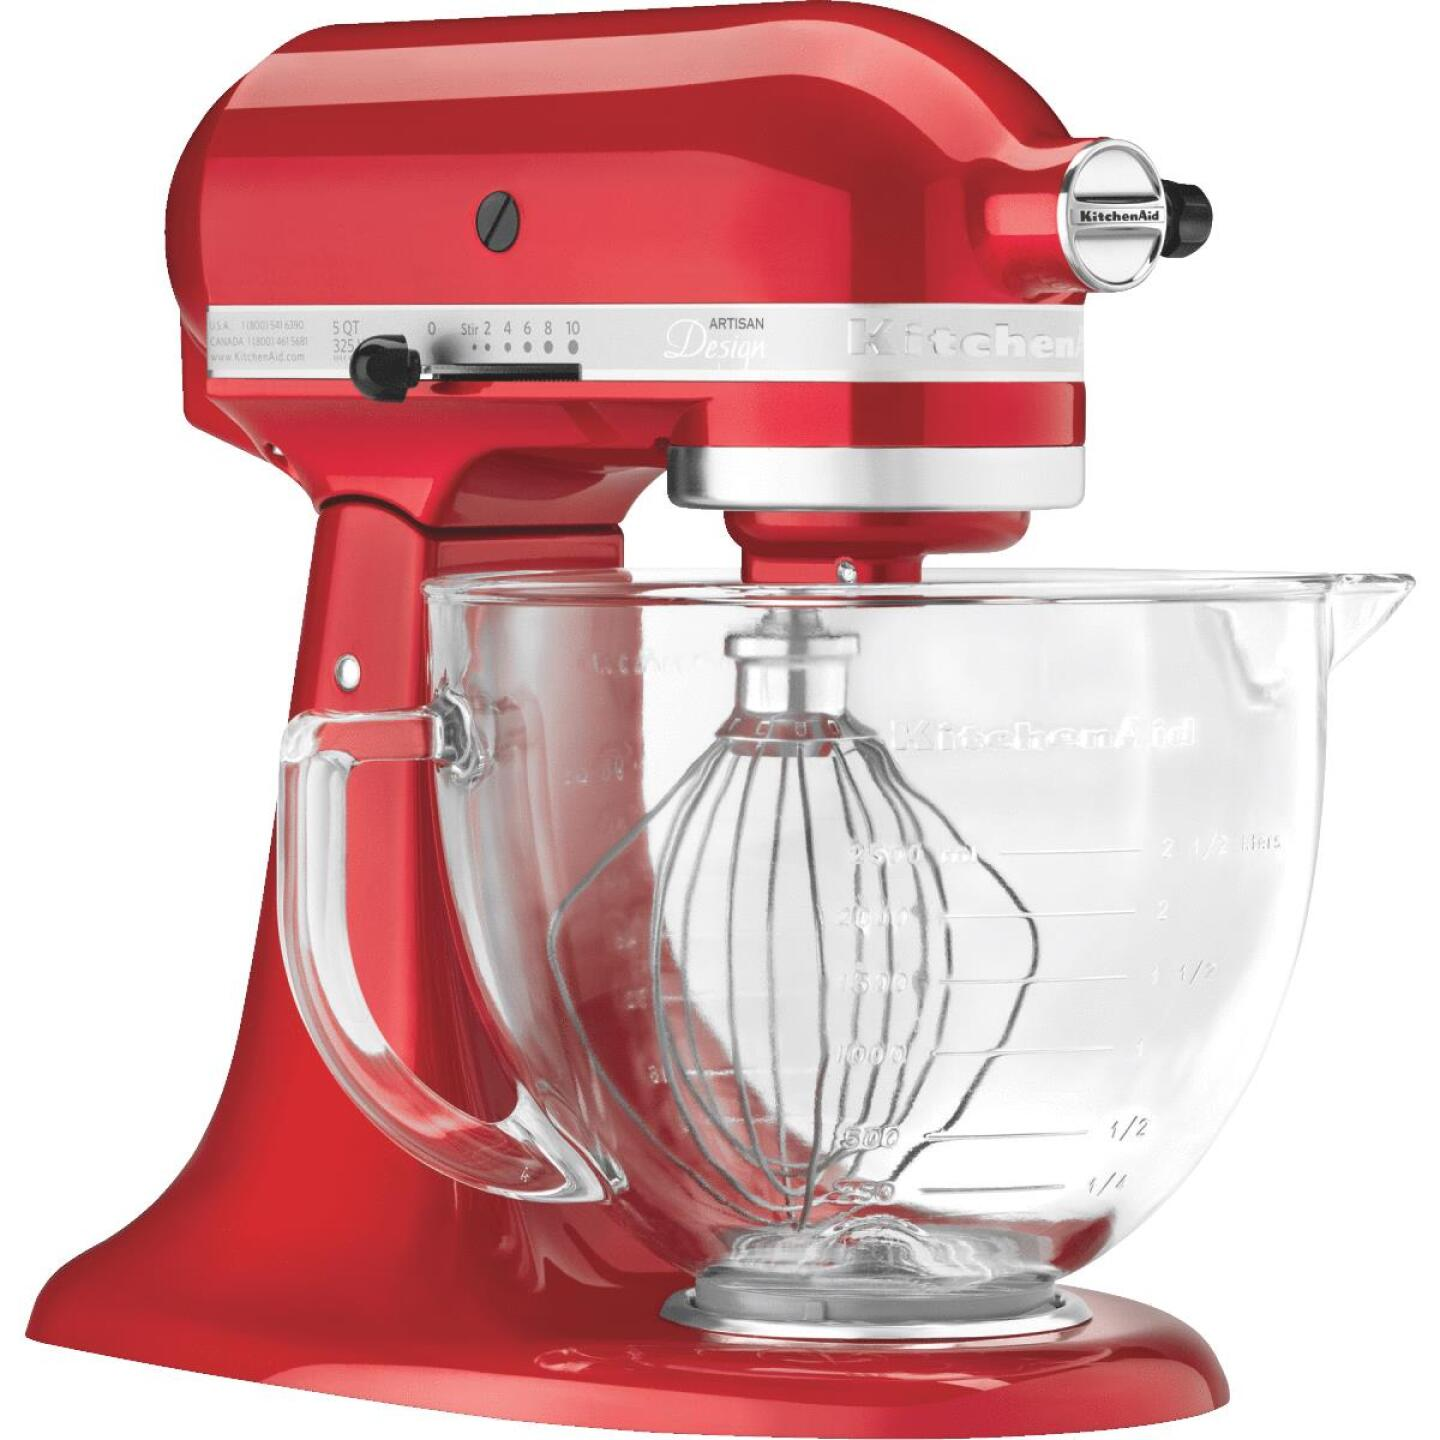 KitchenAid Artisan Series 10-Speed Red Stand Mixer With Glass Bowl Image 1